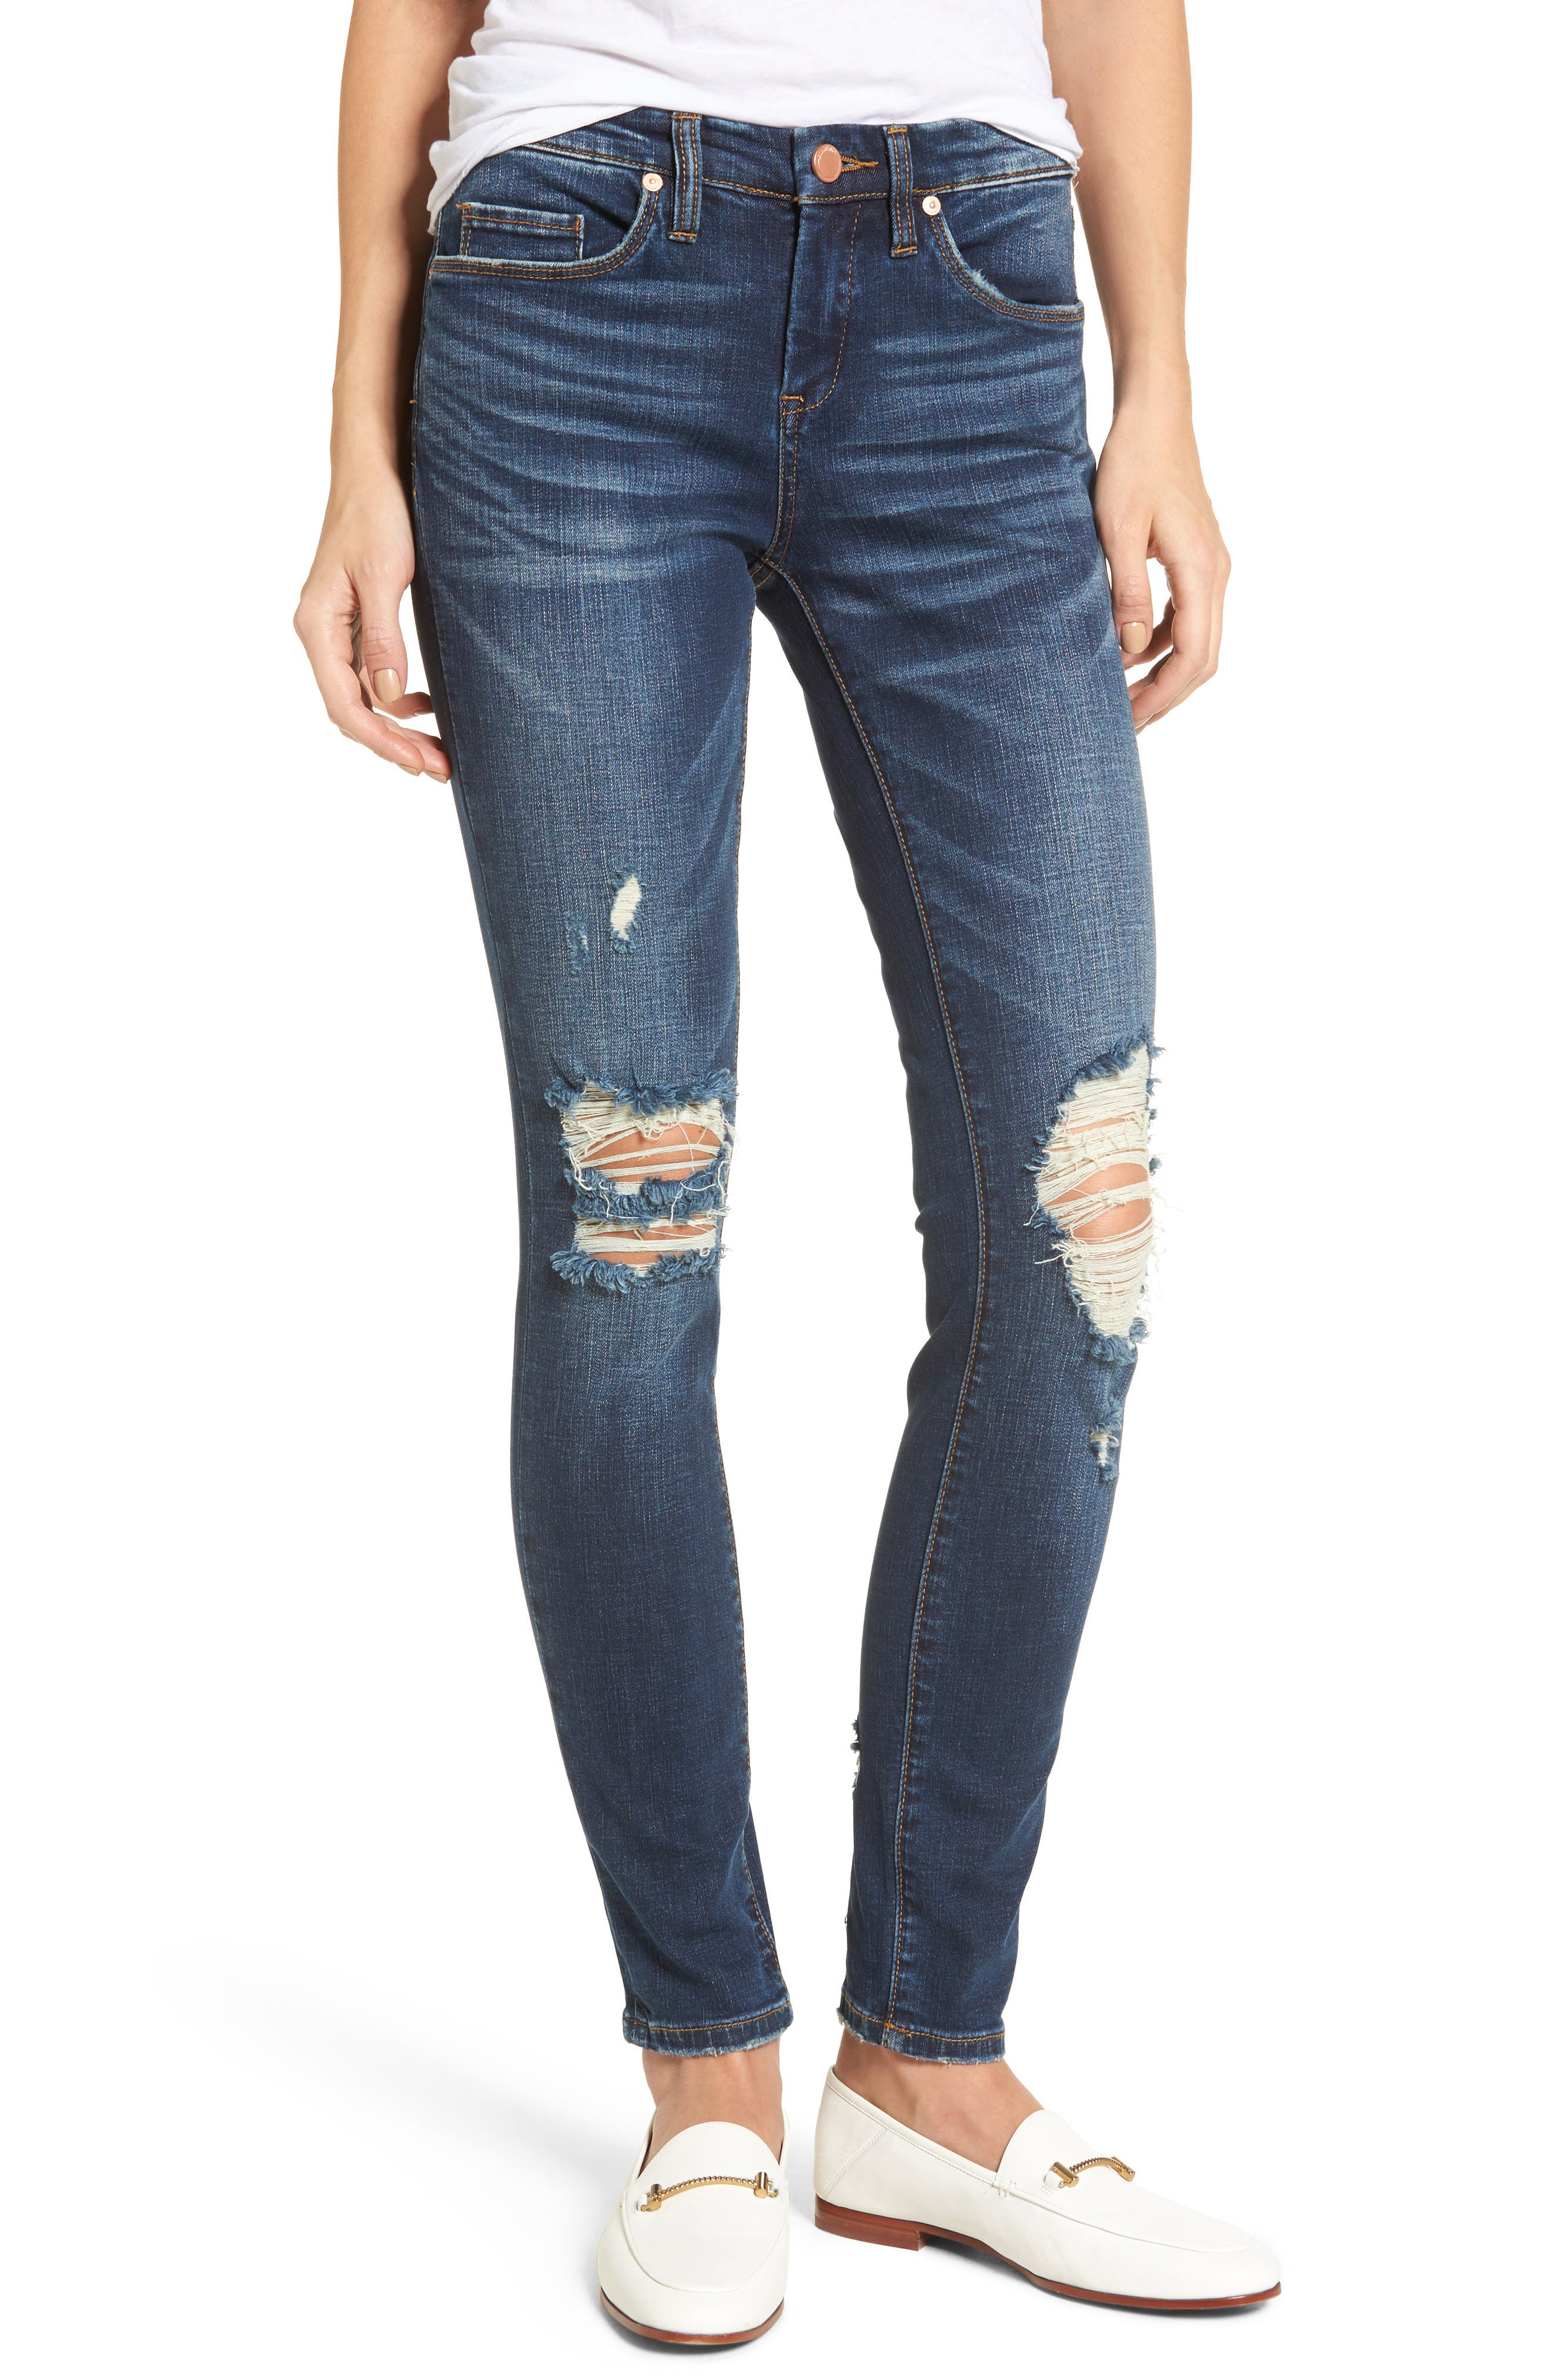 Decon Cult Classic Skinny Jeans,                             Main thumbnail 1, color,                             400